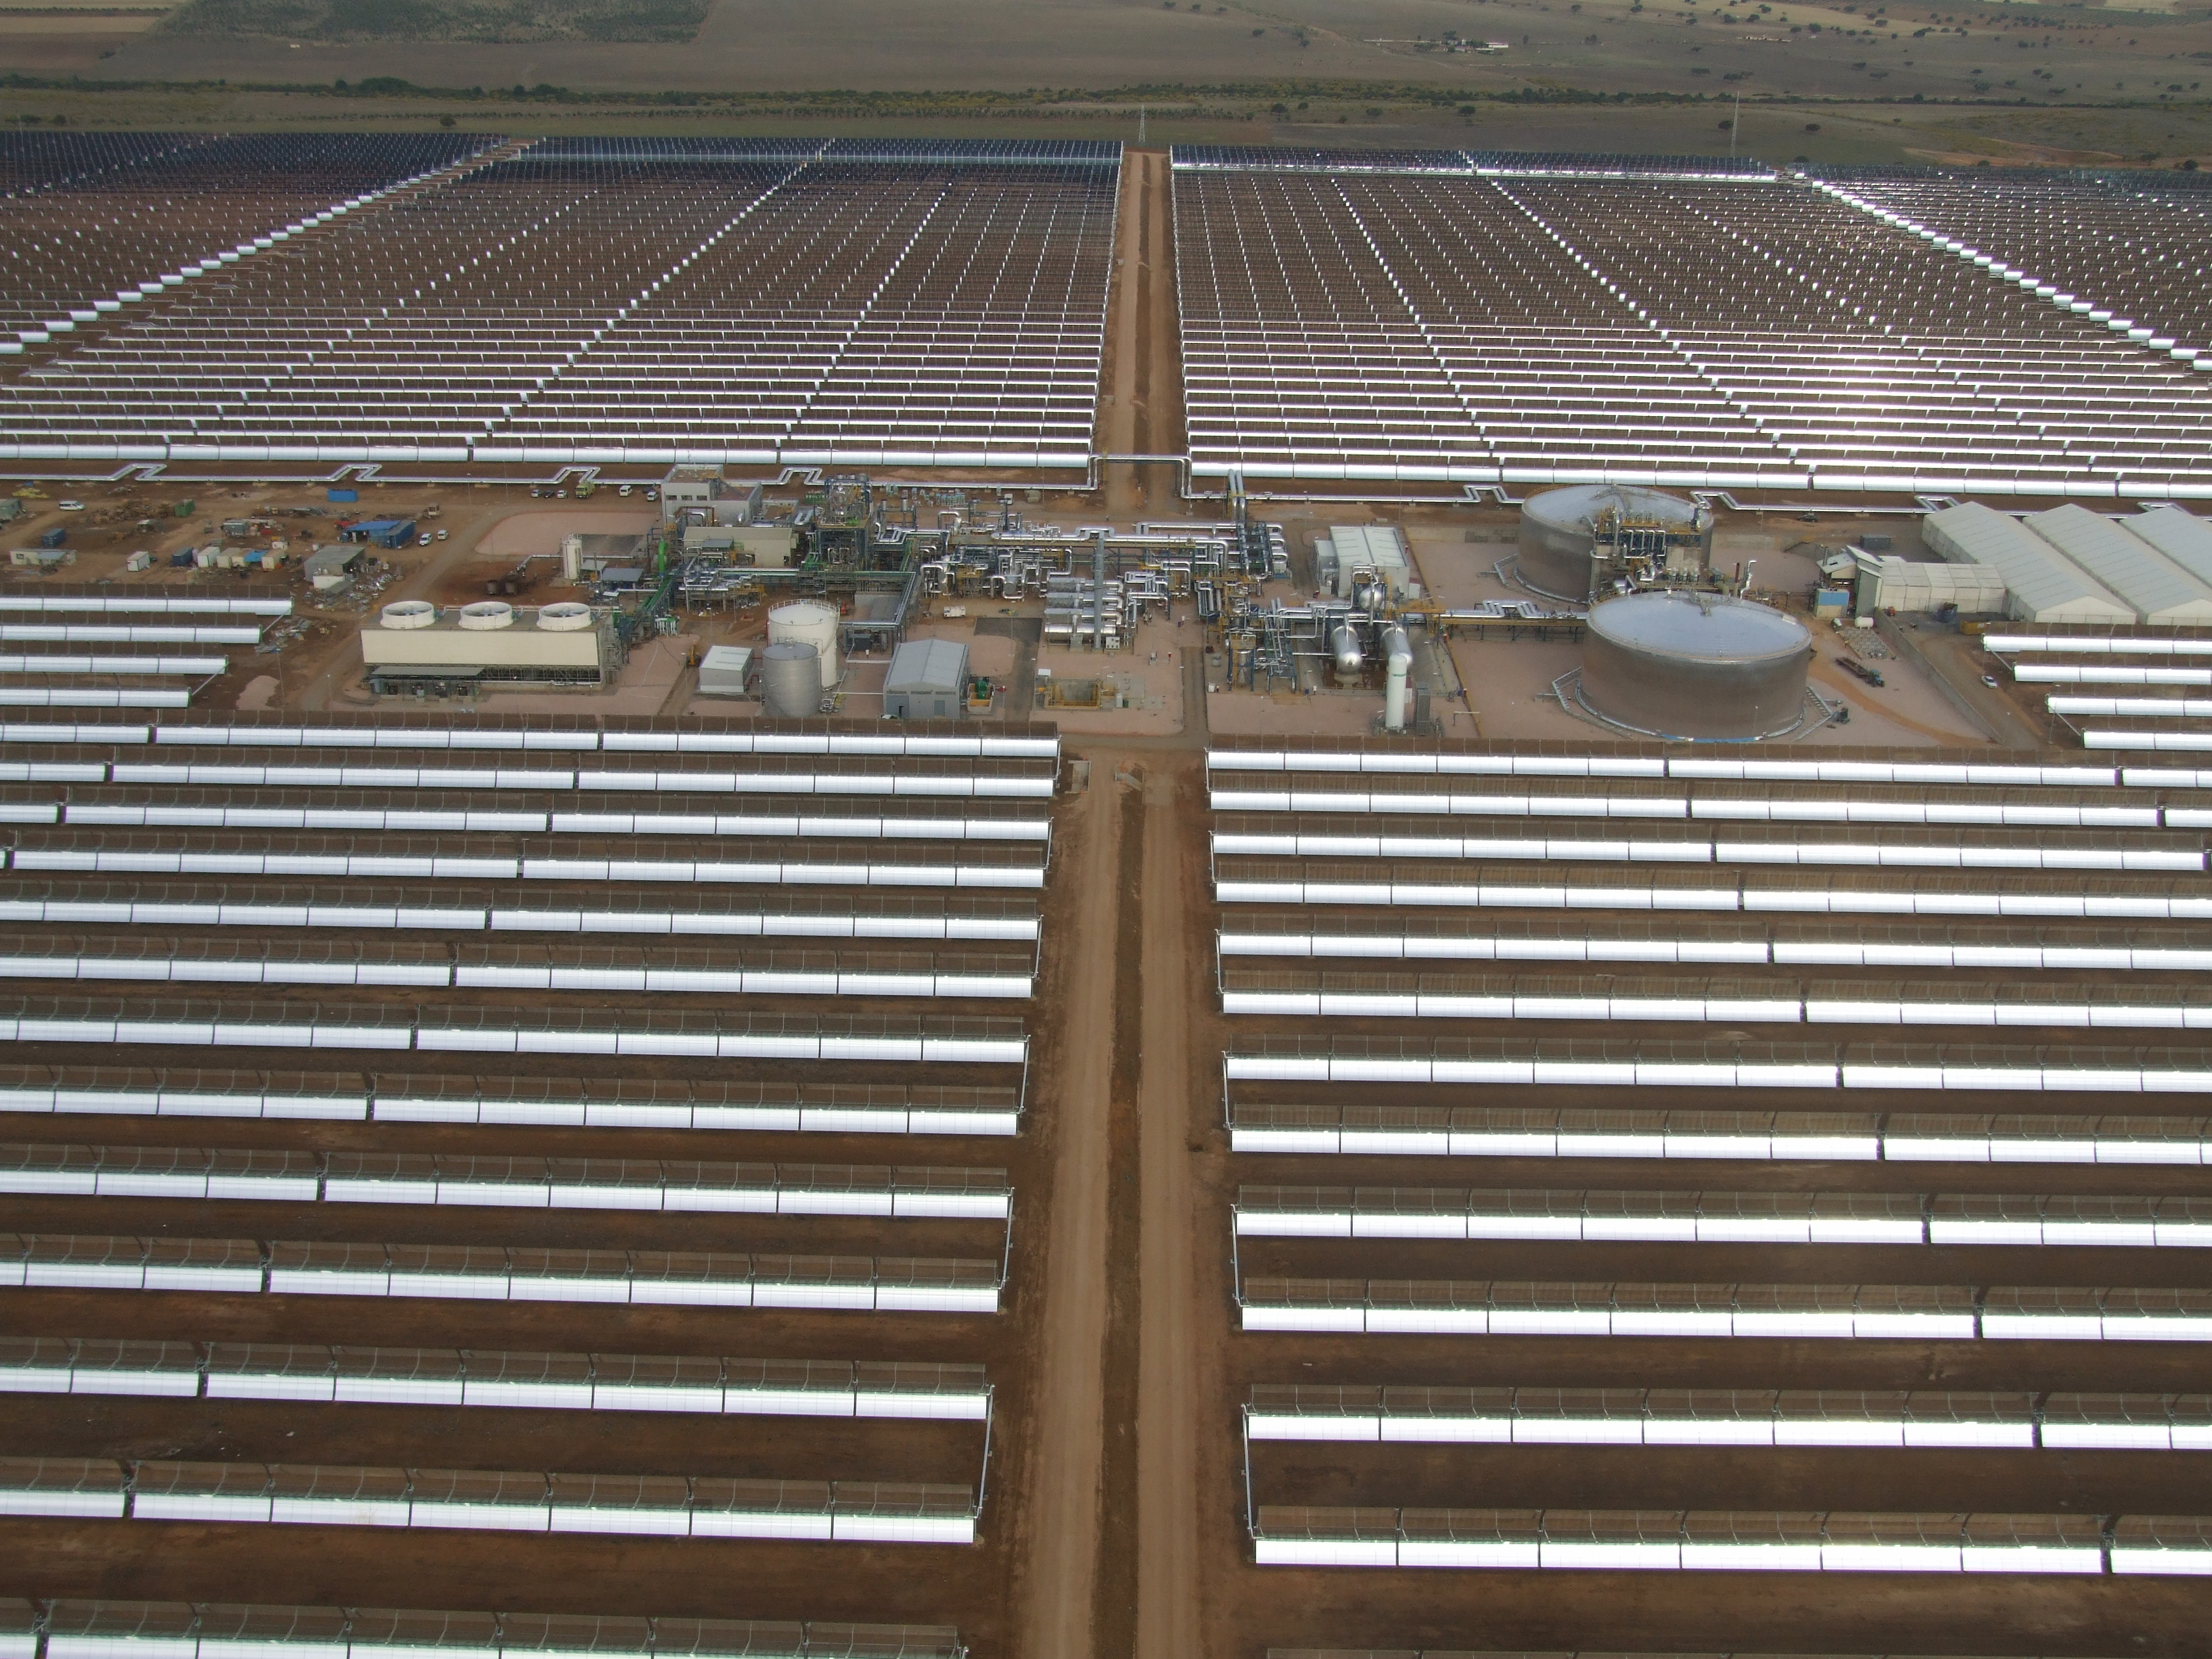 Extresol Concentrating Solar Power / Cobra